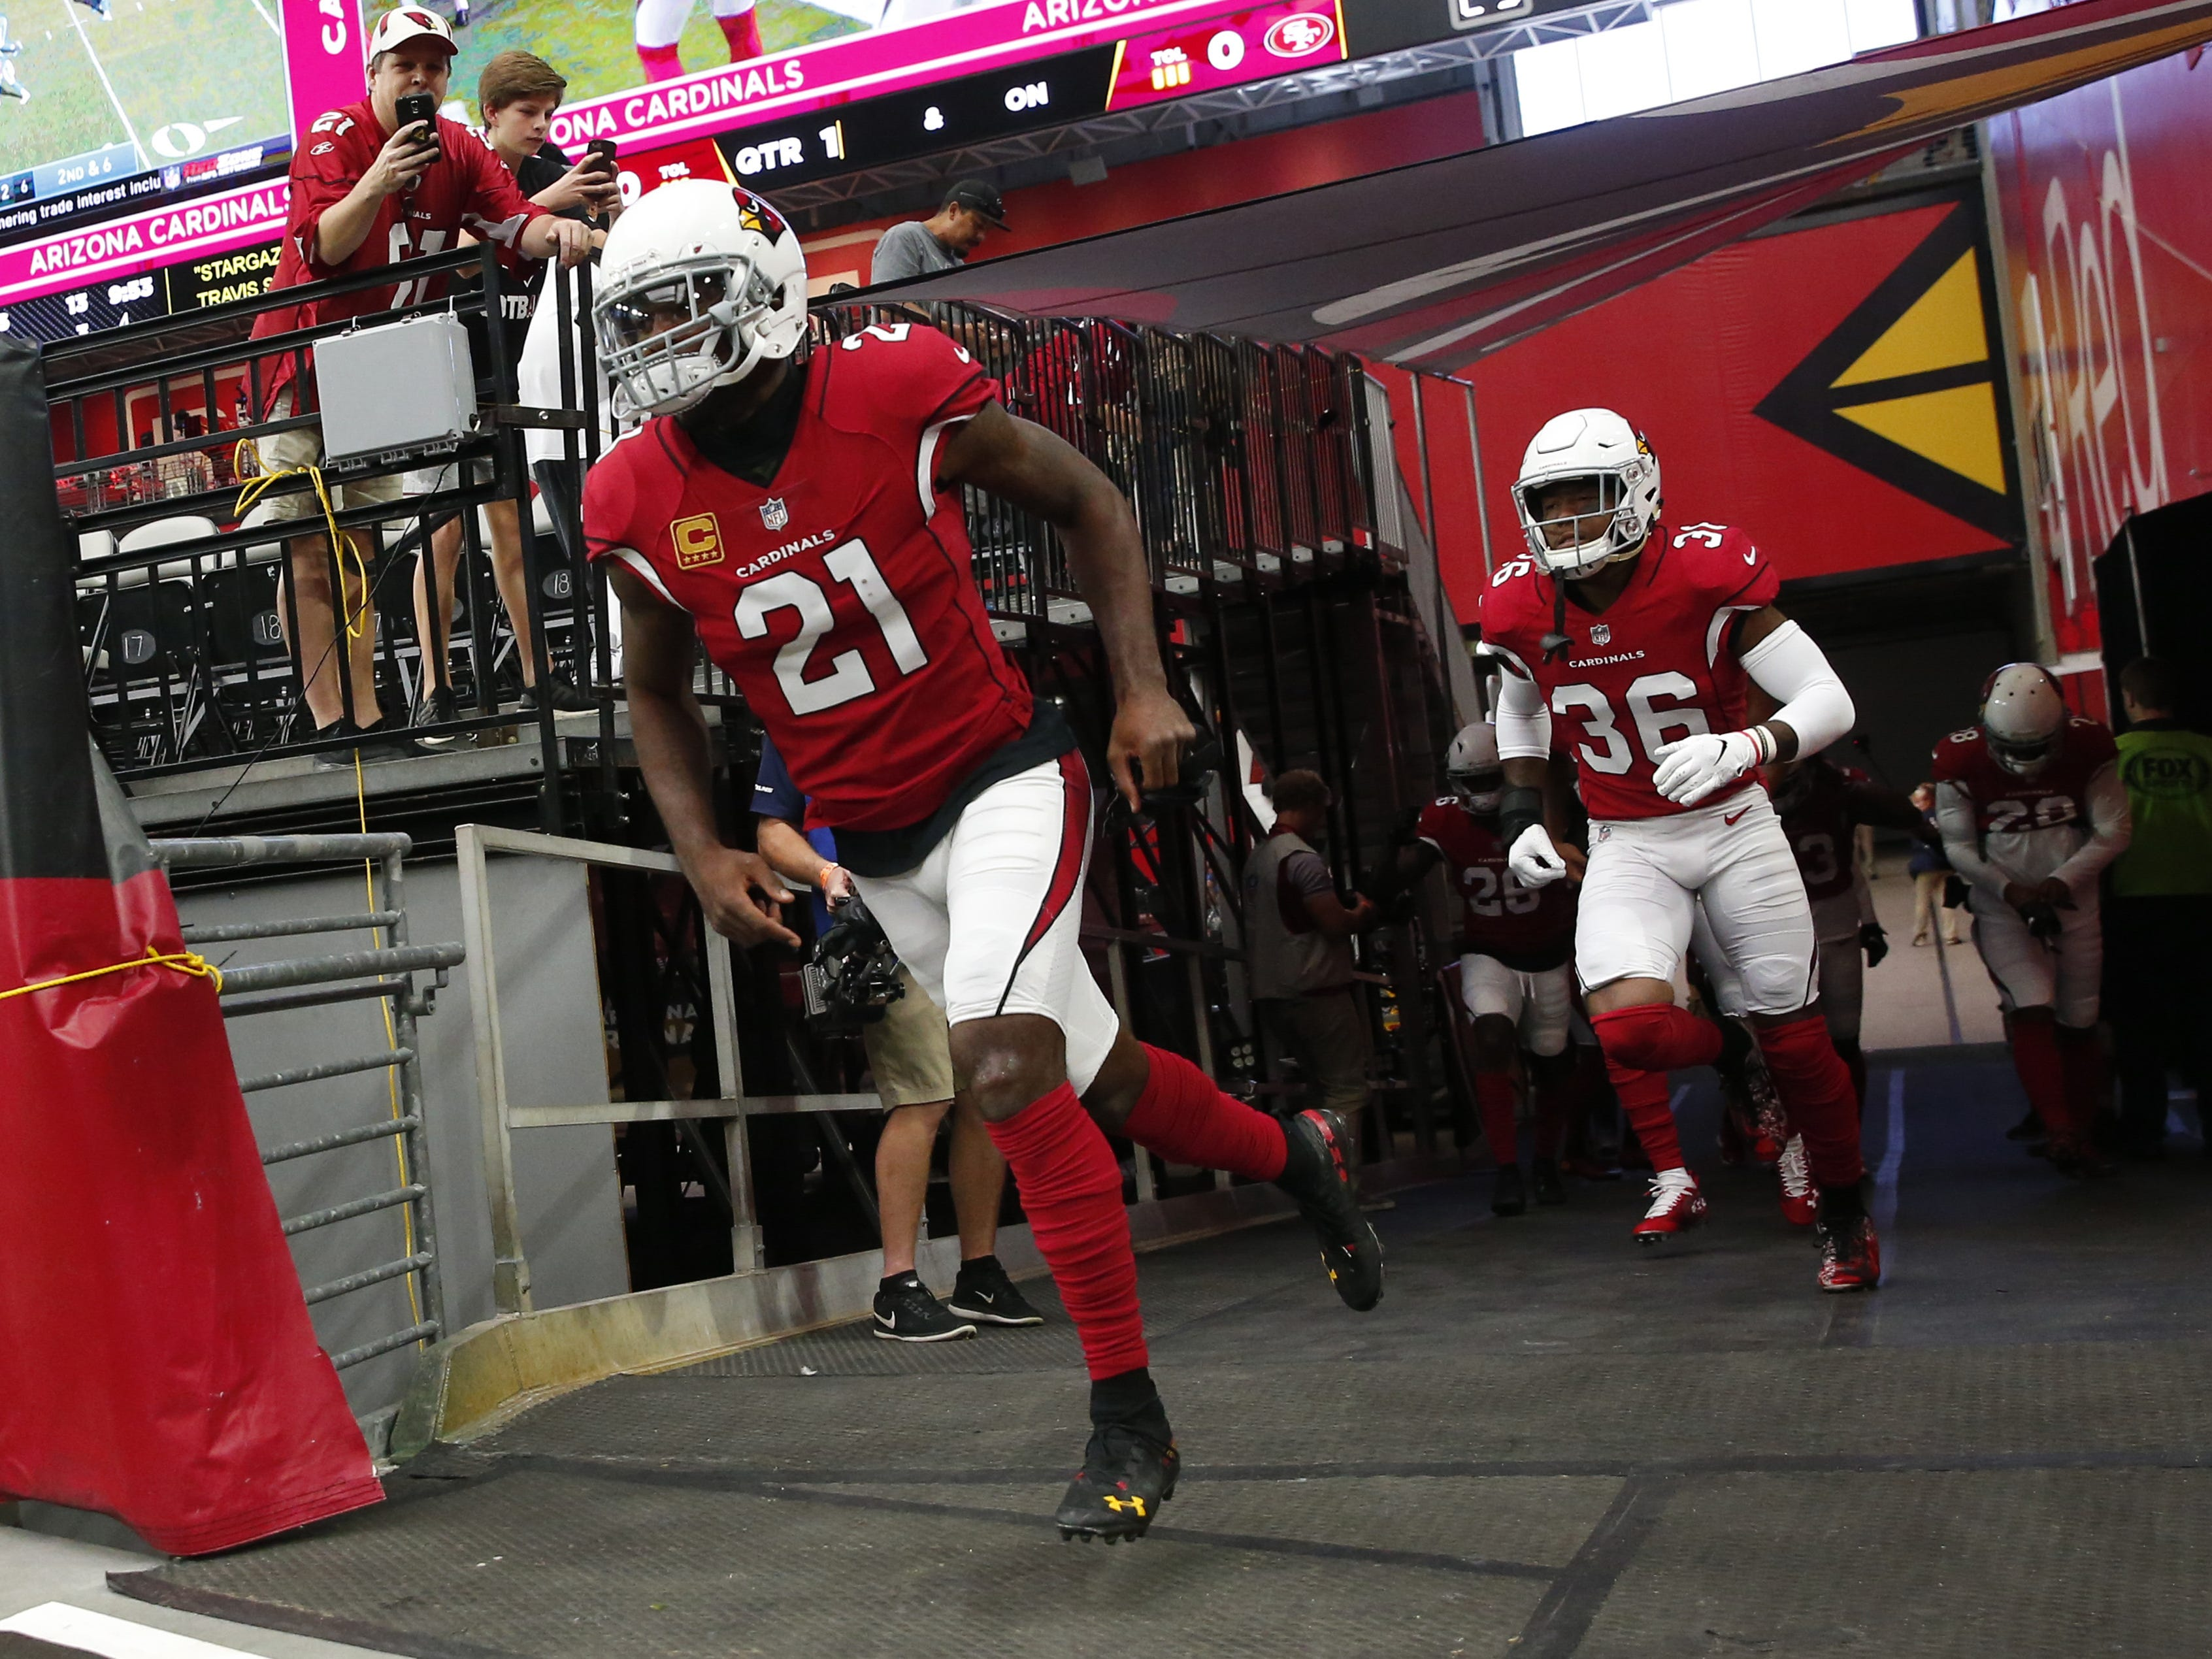 Arizona Cardinals cornerback Patrick Peterson (21) runs onto the field for warm ups before NFL action against the San Francisco 49ers on Oct. 28 at State Farm Stadium.